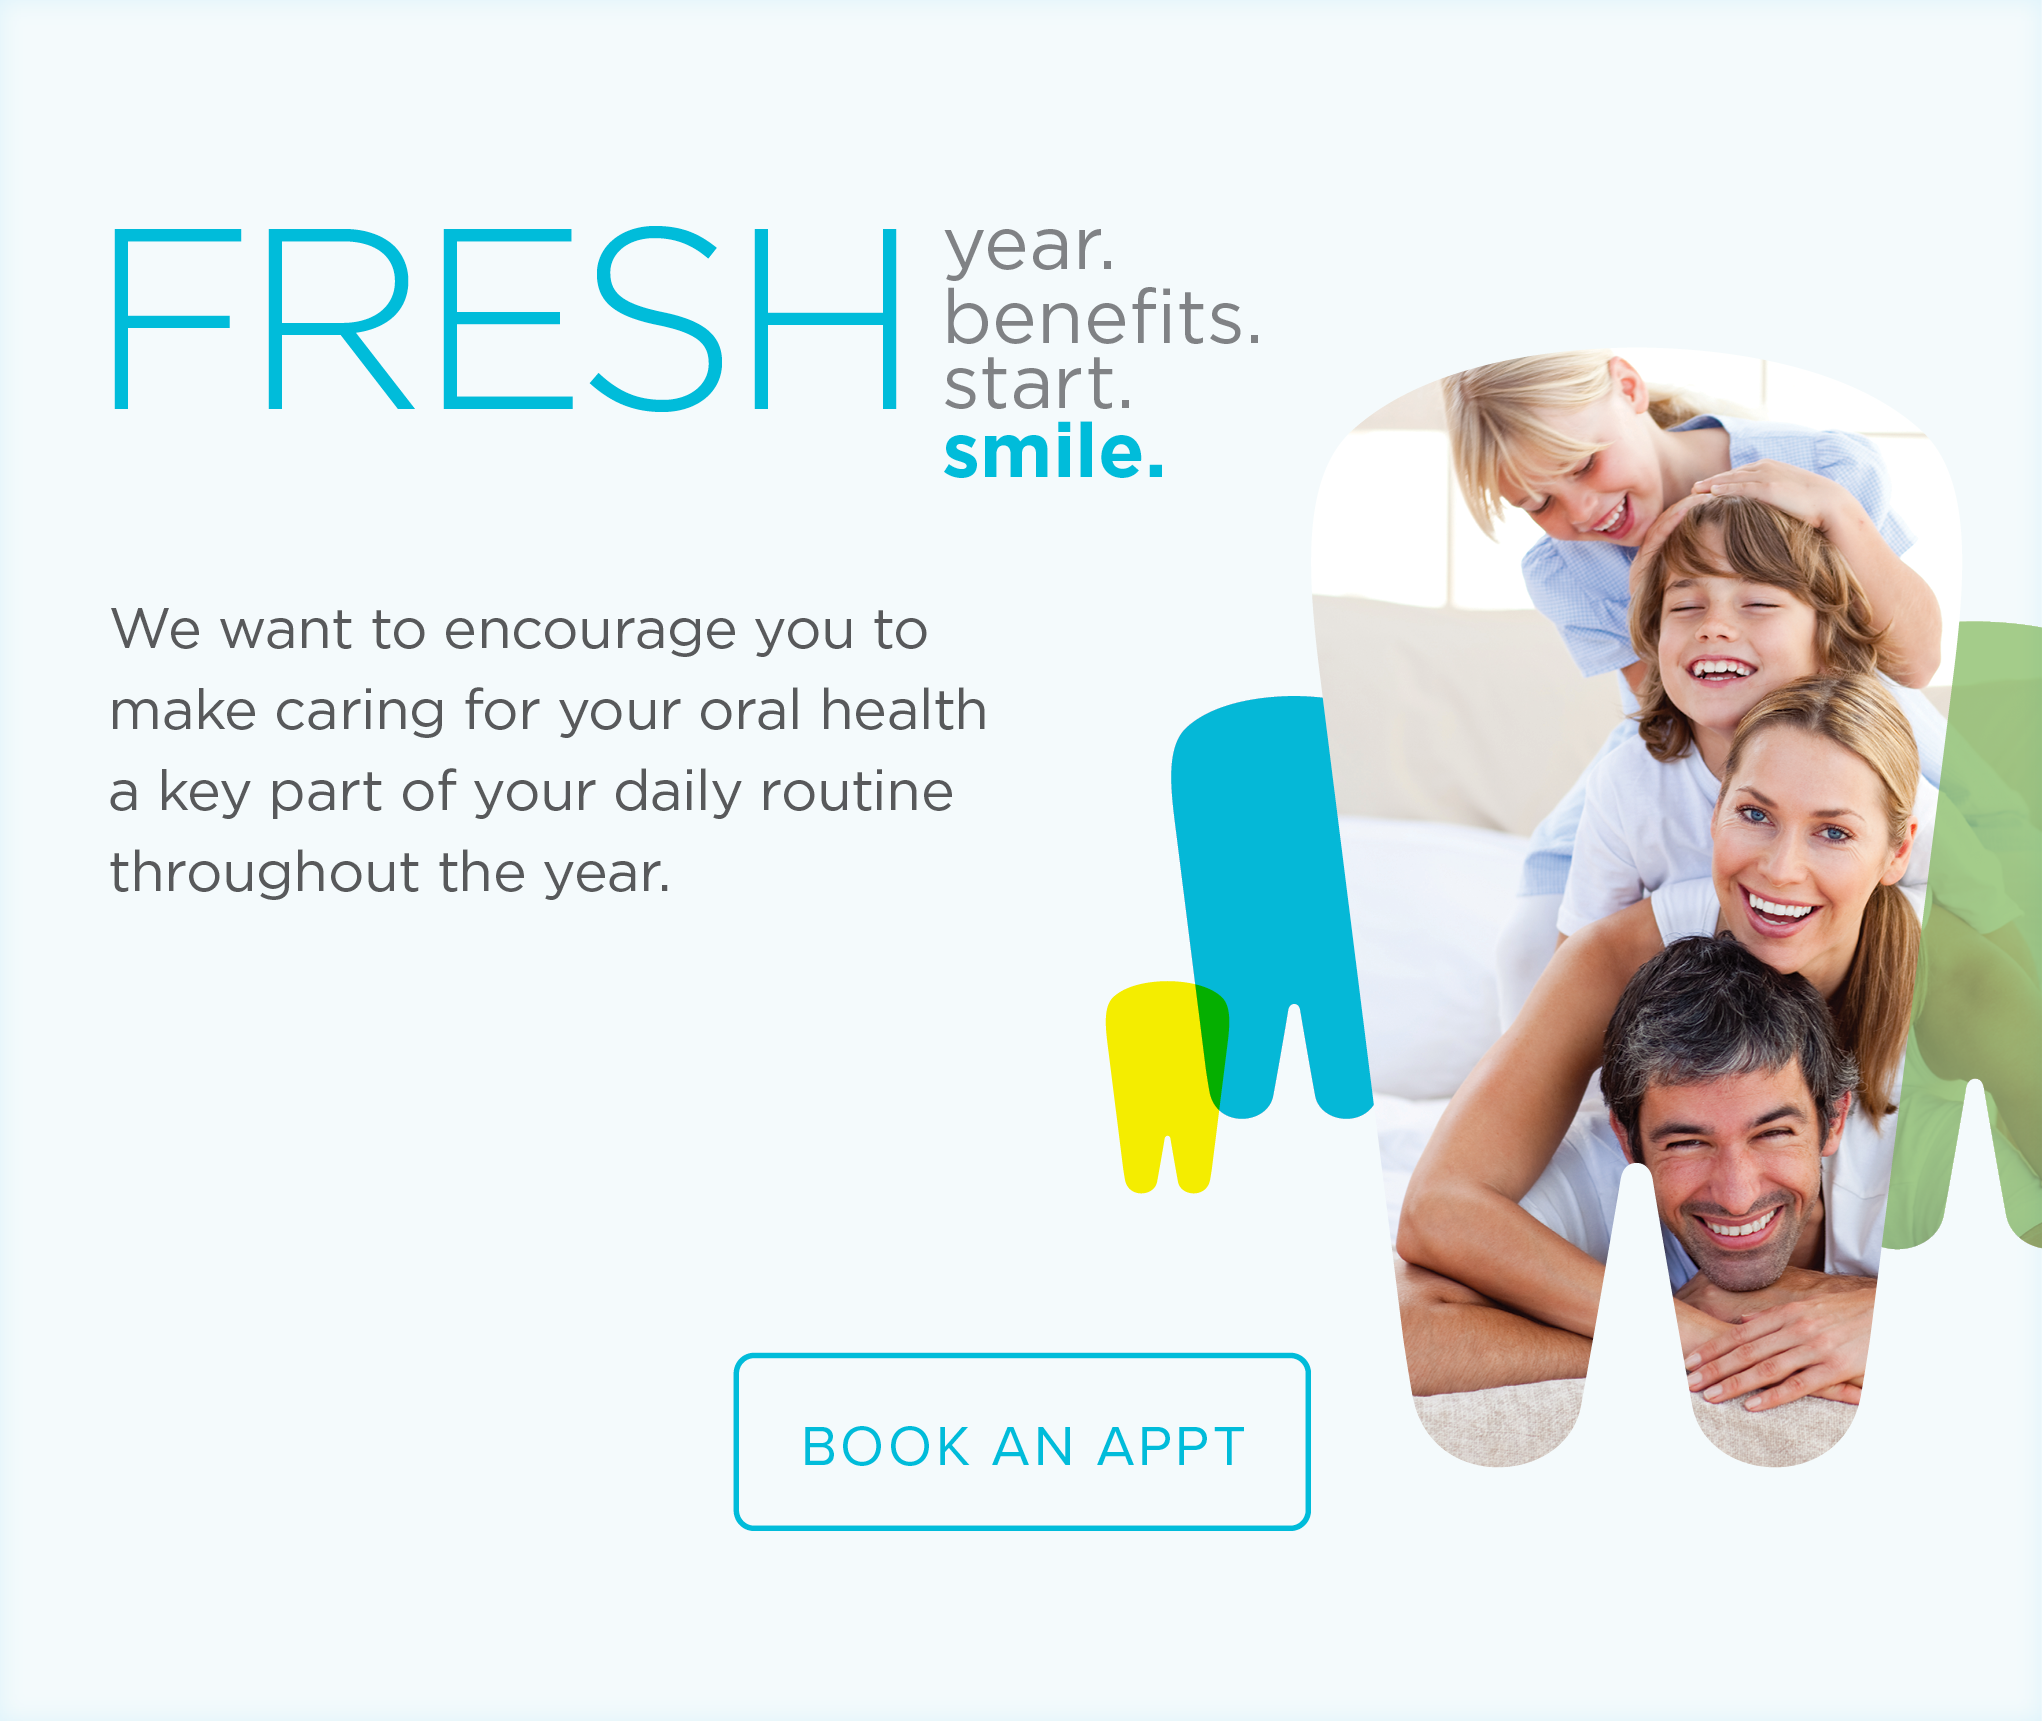 Riverside Plaza Dentistry - Make the Most of Your Benefits